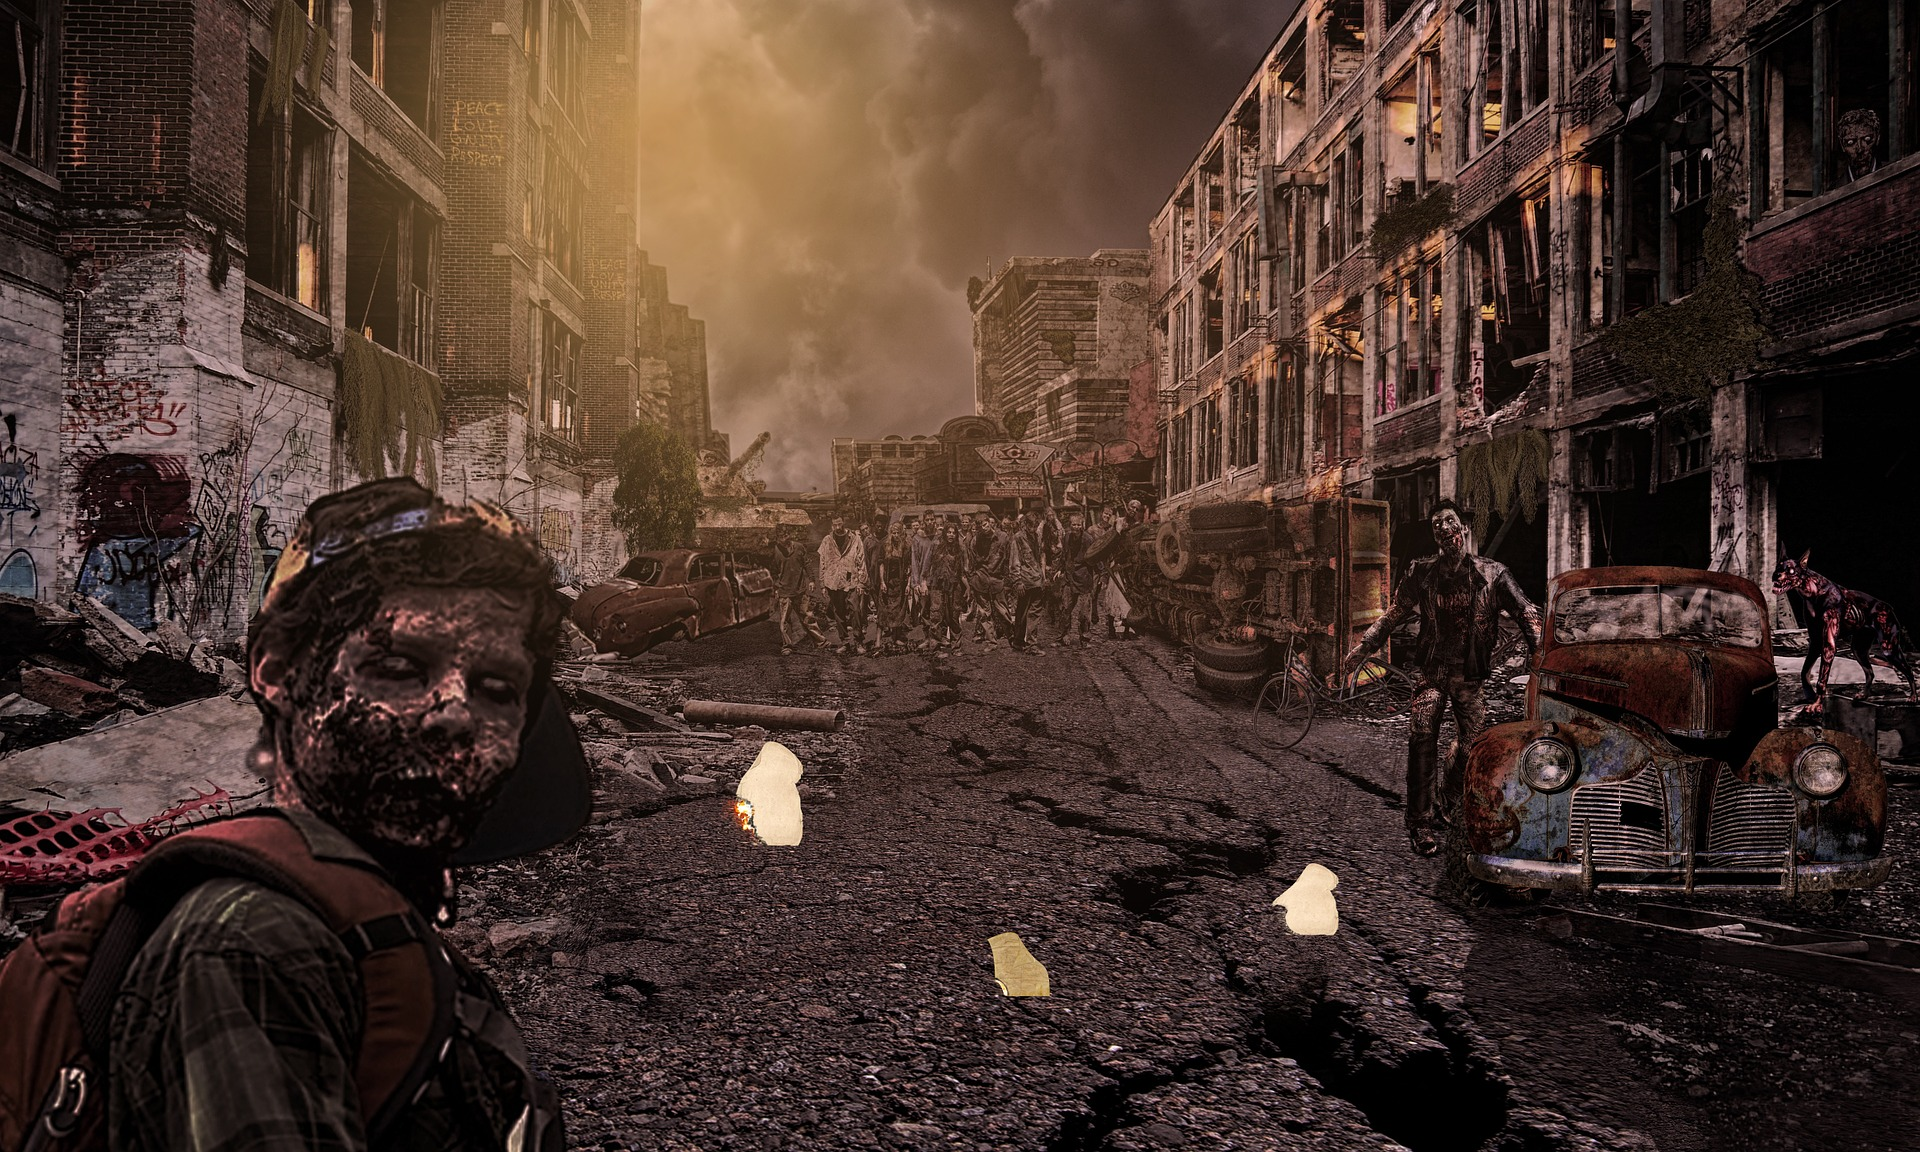 Are Authorities Preparing for a Zombie Outbreak?